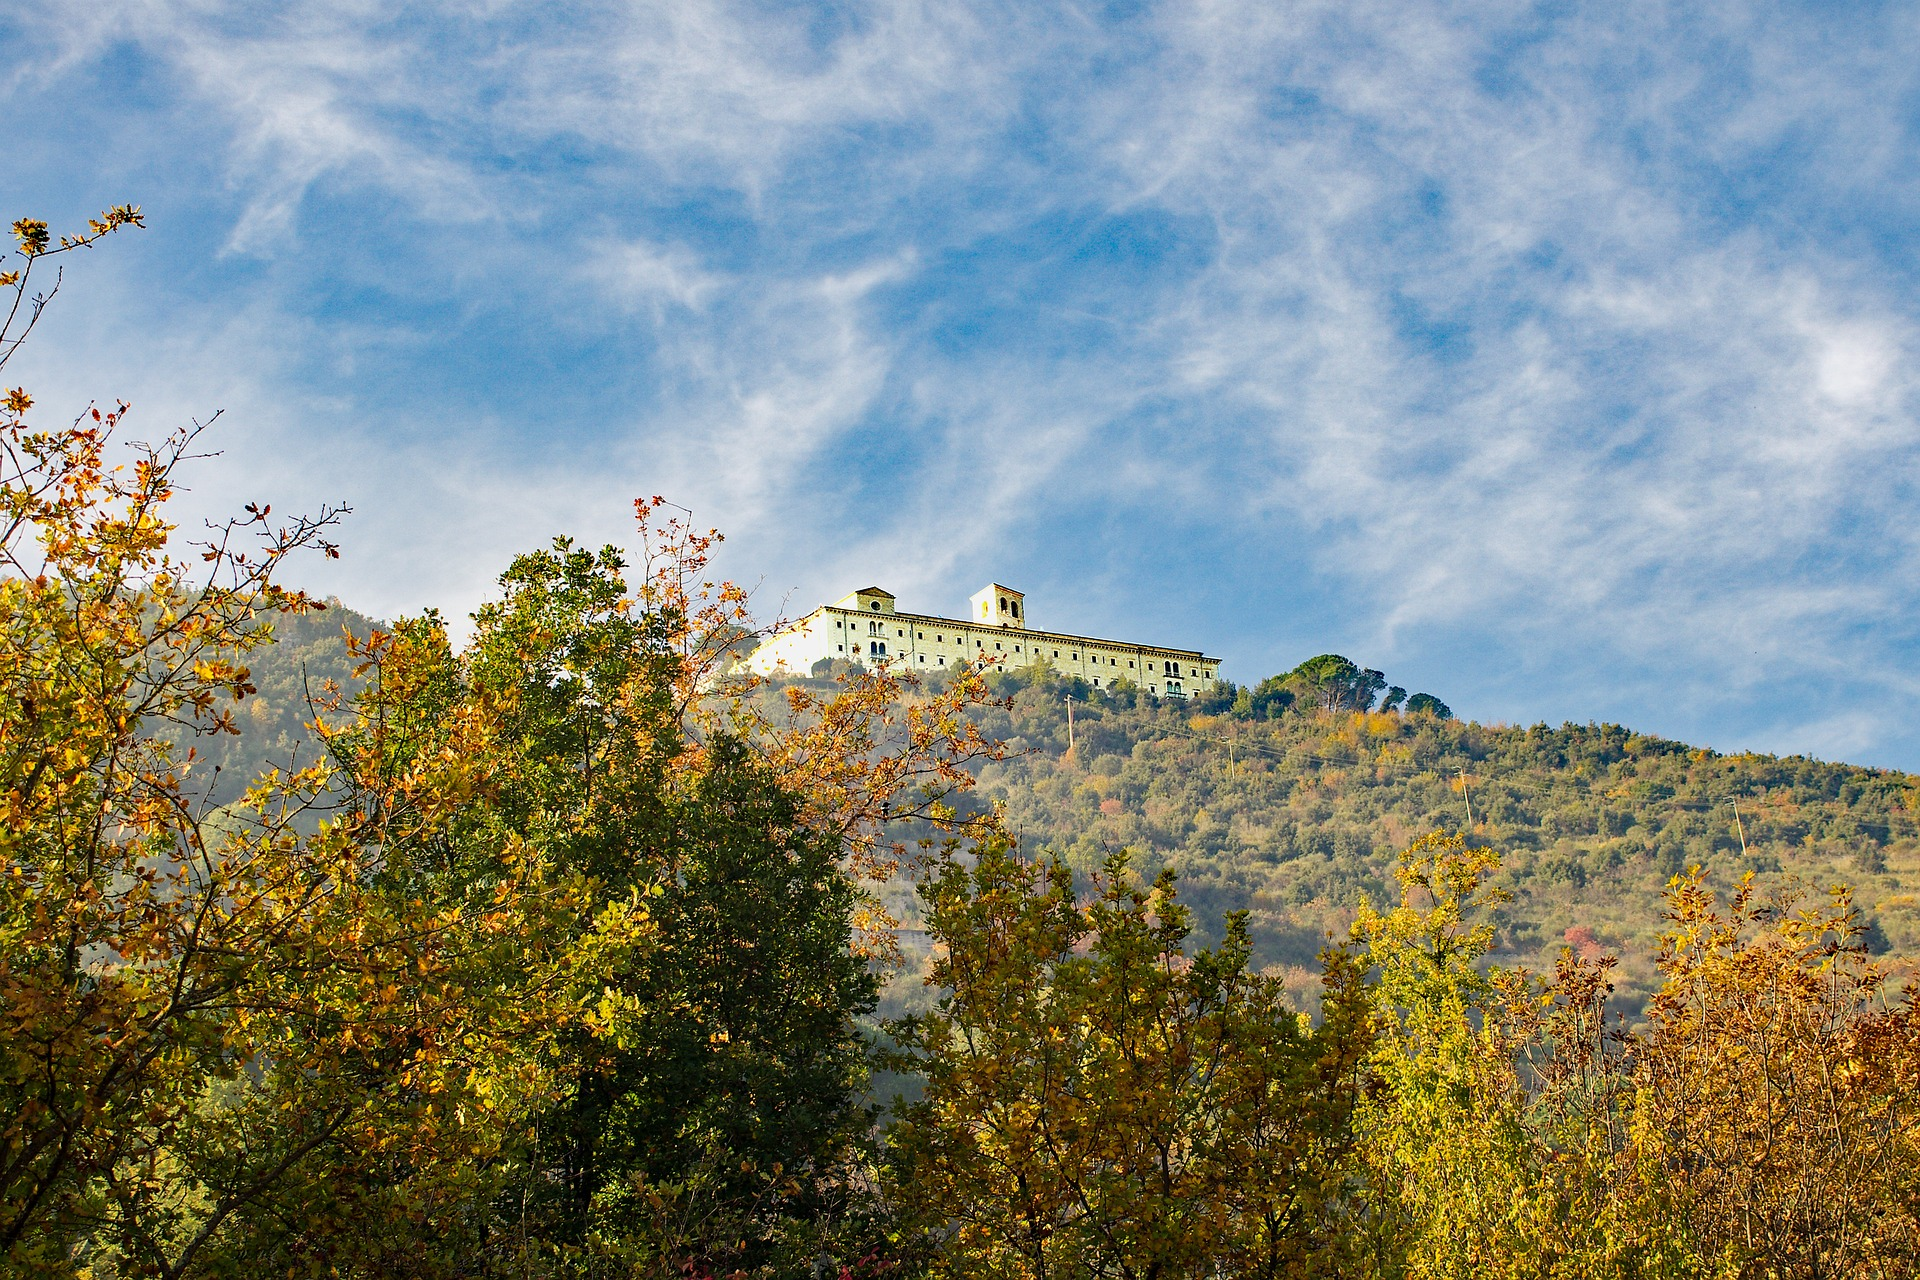 abbey-montecassino-1688655_1920